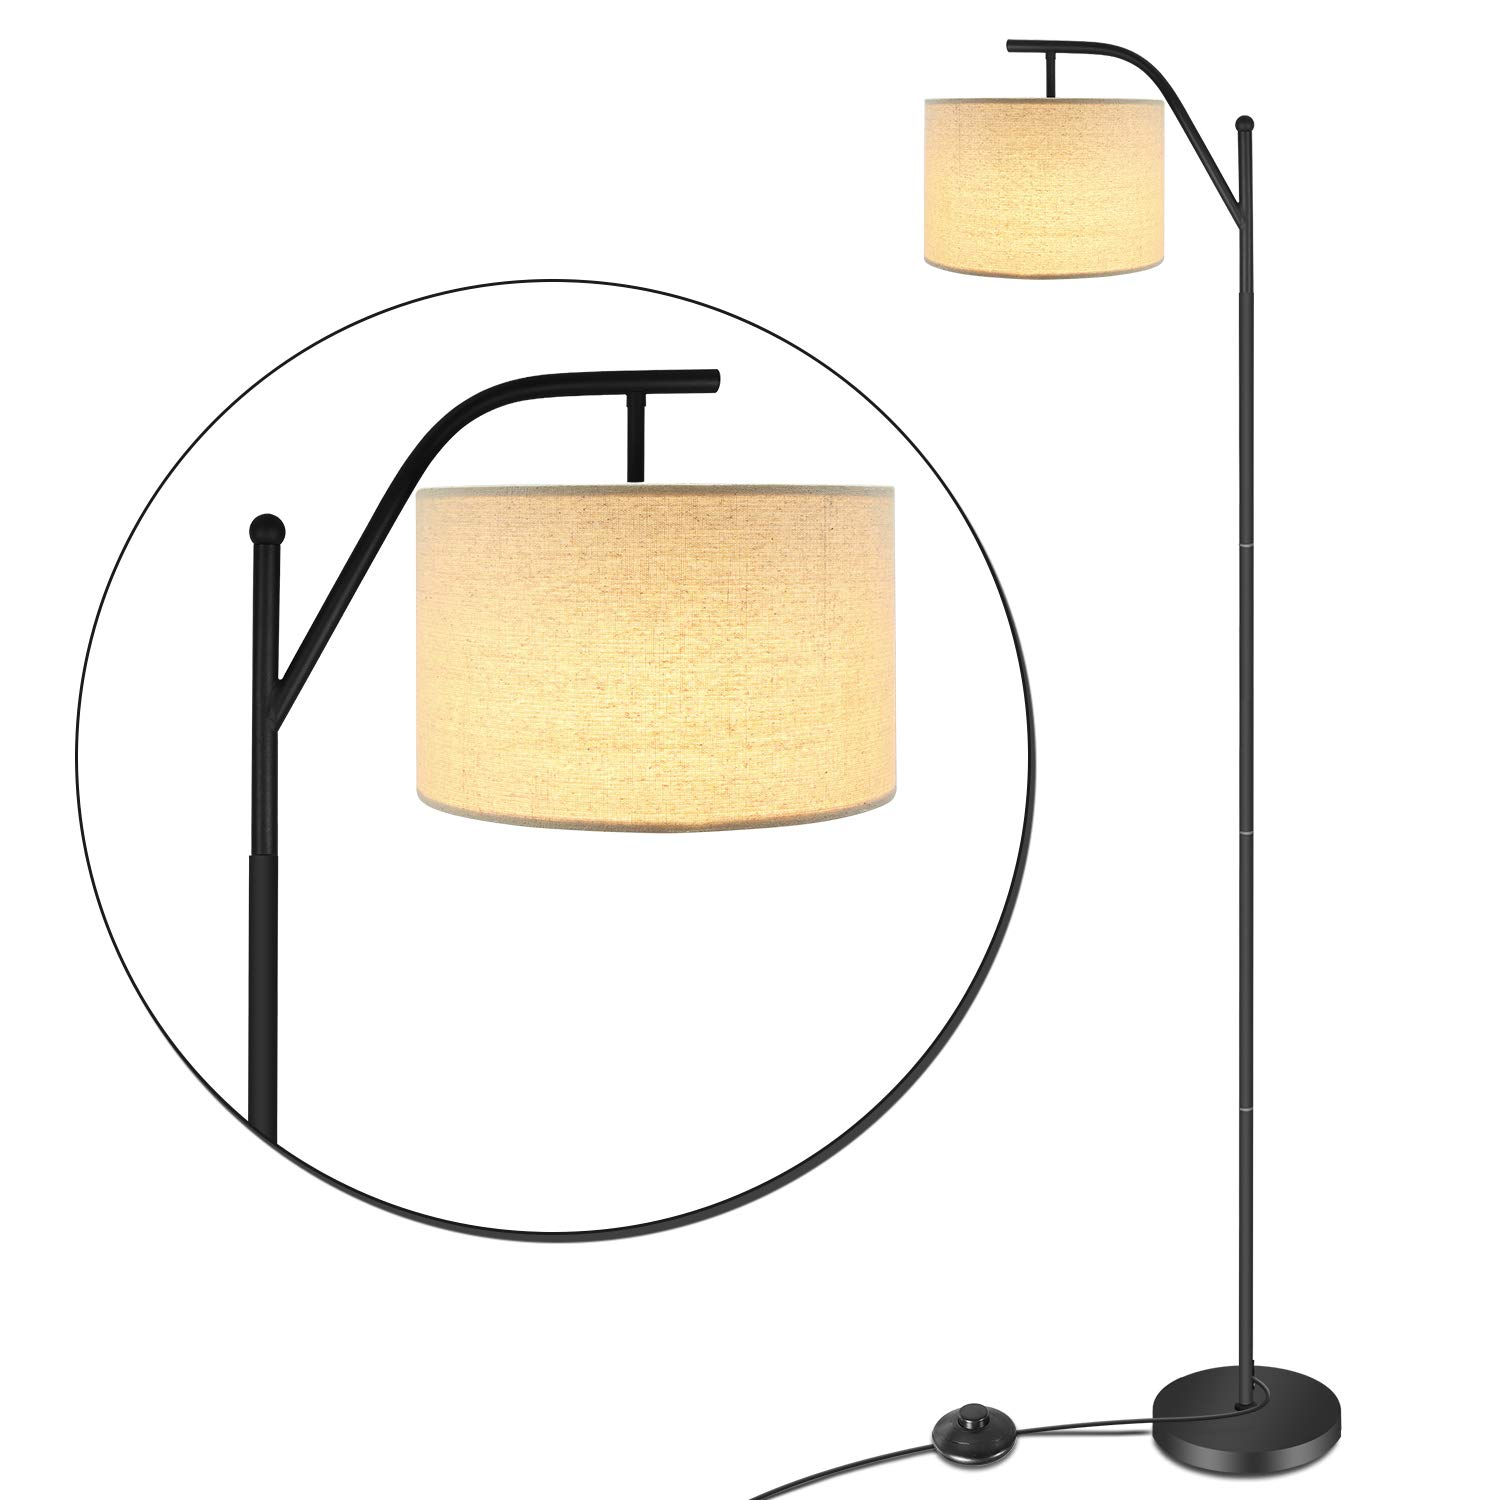 LED Floor Lamp,Anbomo Classic Standing Industrial Arc Light with Hanging Lamp Shade,Modern Floor Lamp for Bedroom, Living Roon, Study Room, Tall Pole Uplight for Office by Anbomo